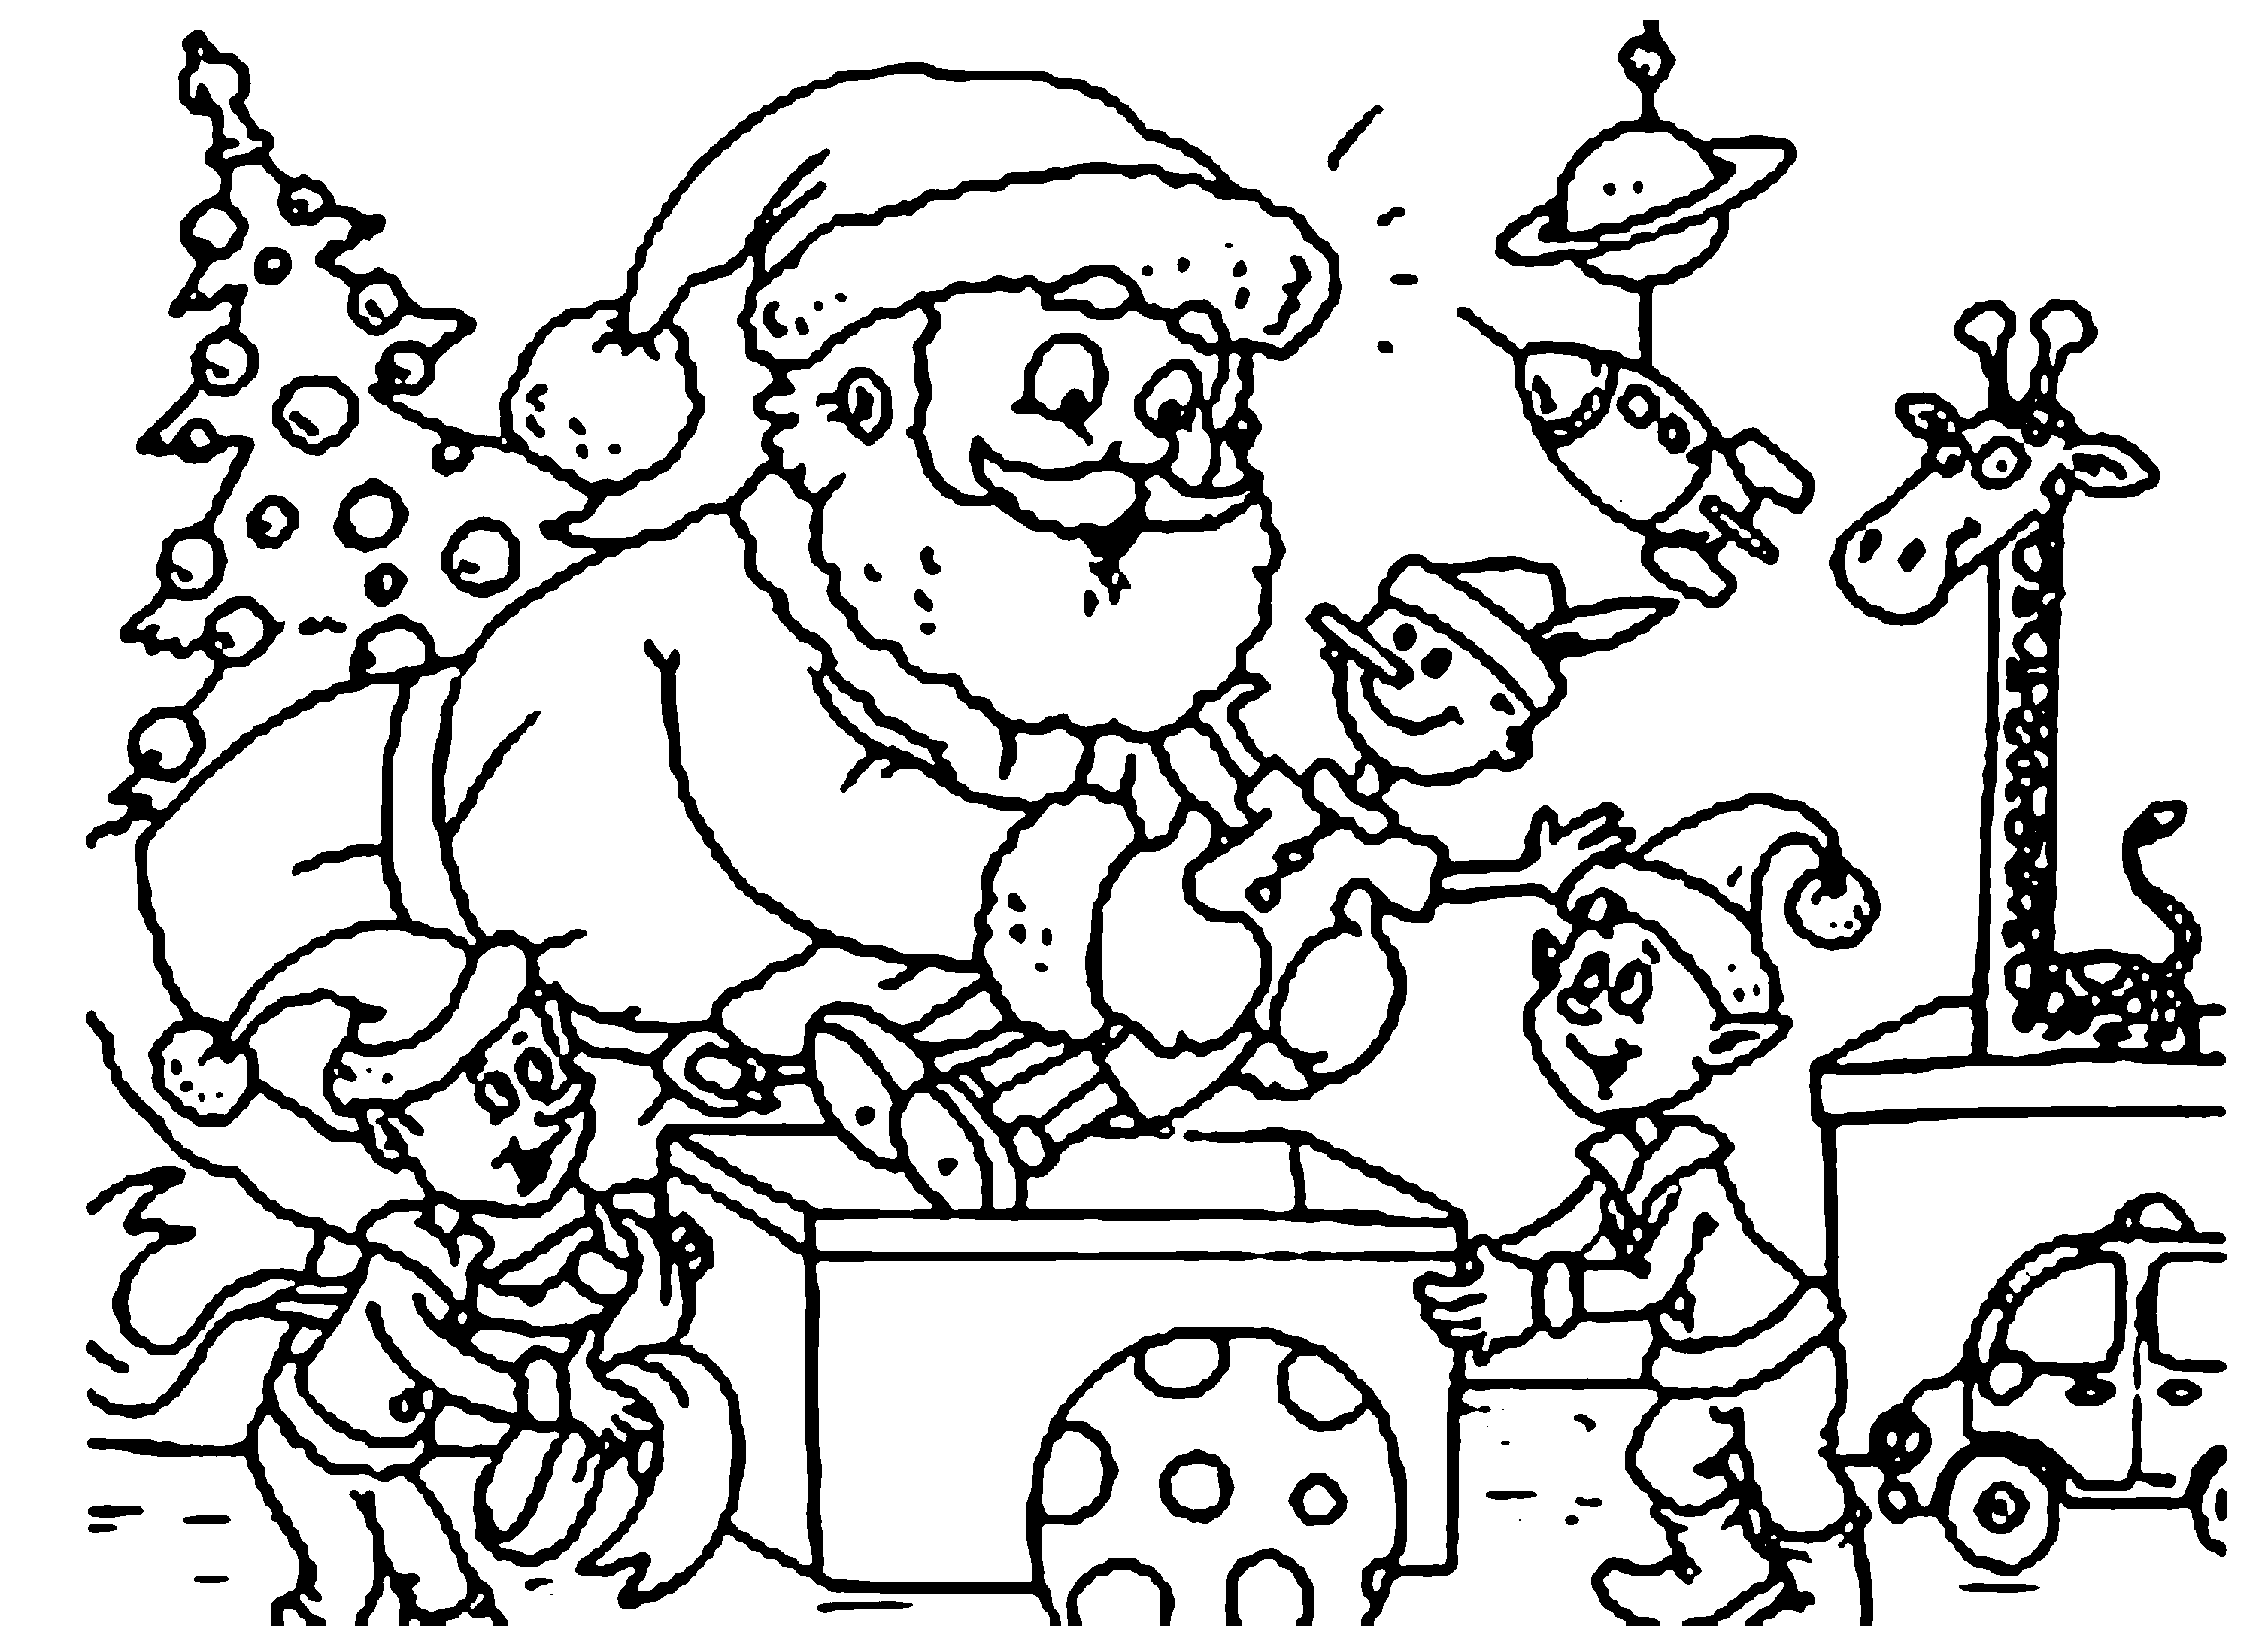 coloring christmas list for kids santa coloring pages best coloring pages for kids christmas kids coloring list for